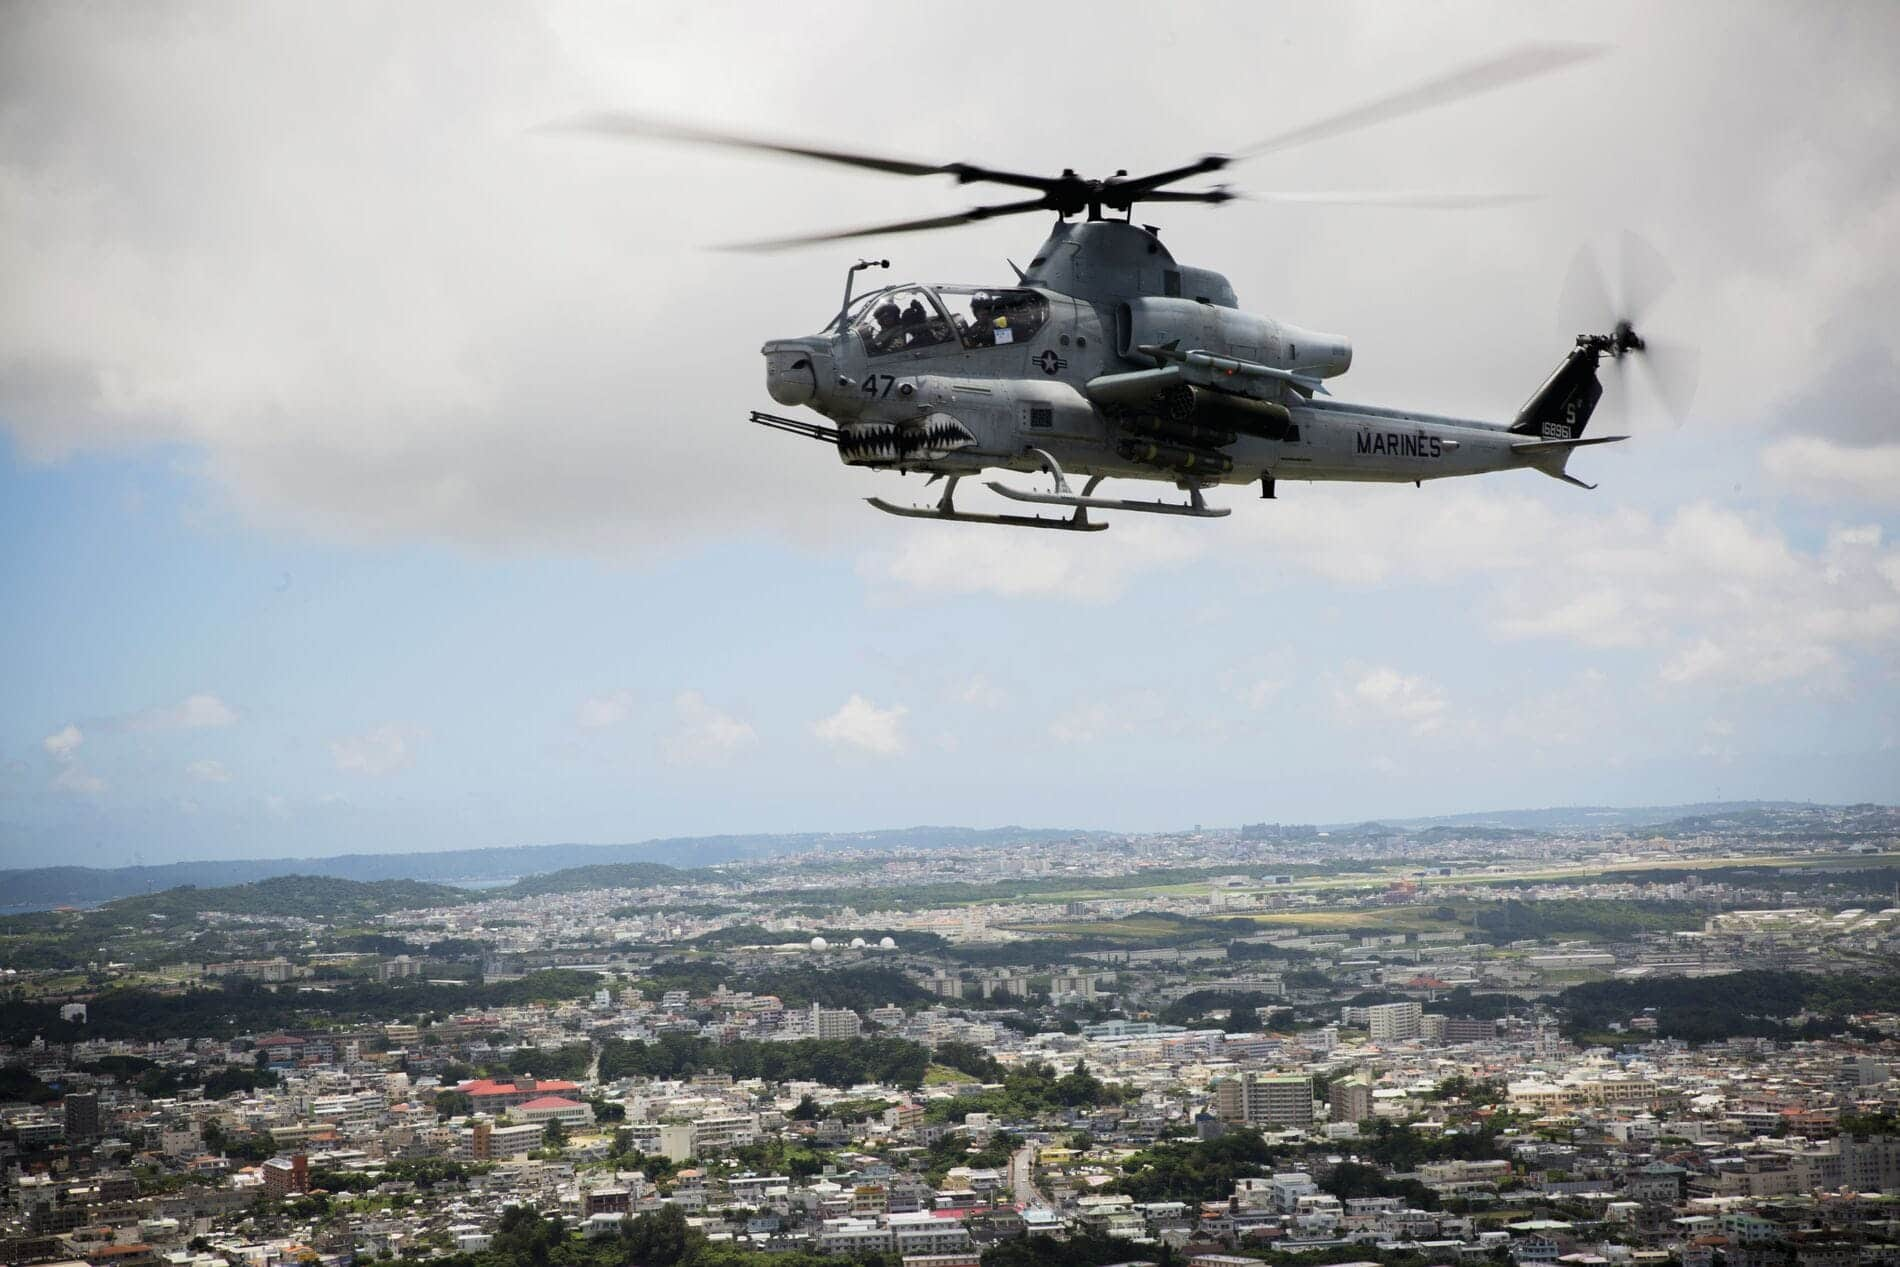 Bell AH-1Z - Attack and Reconnaissance Helicopter Engineered